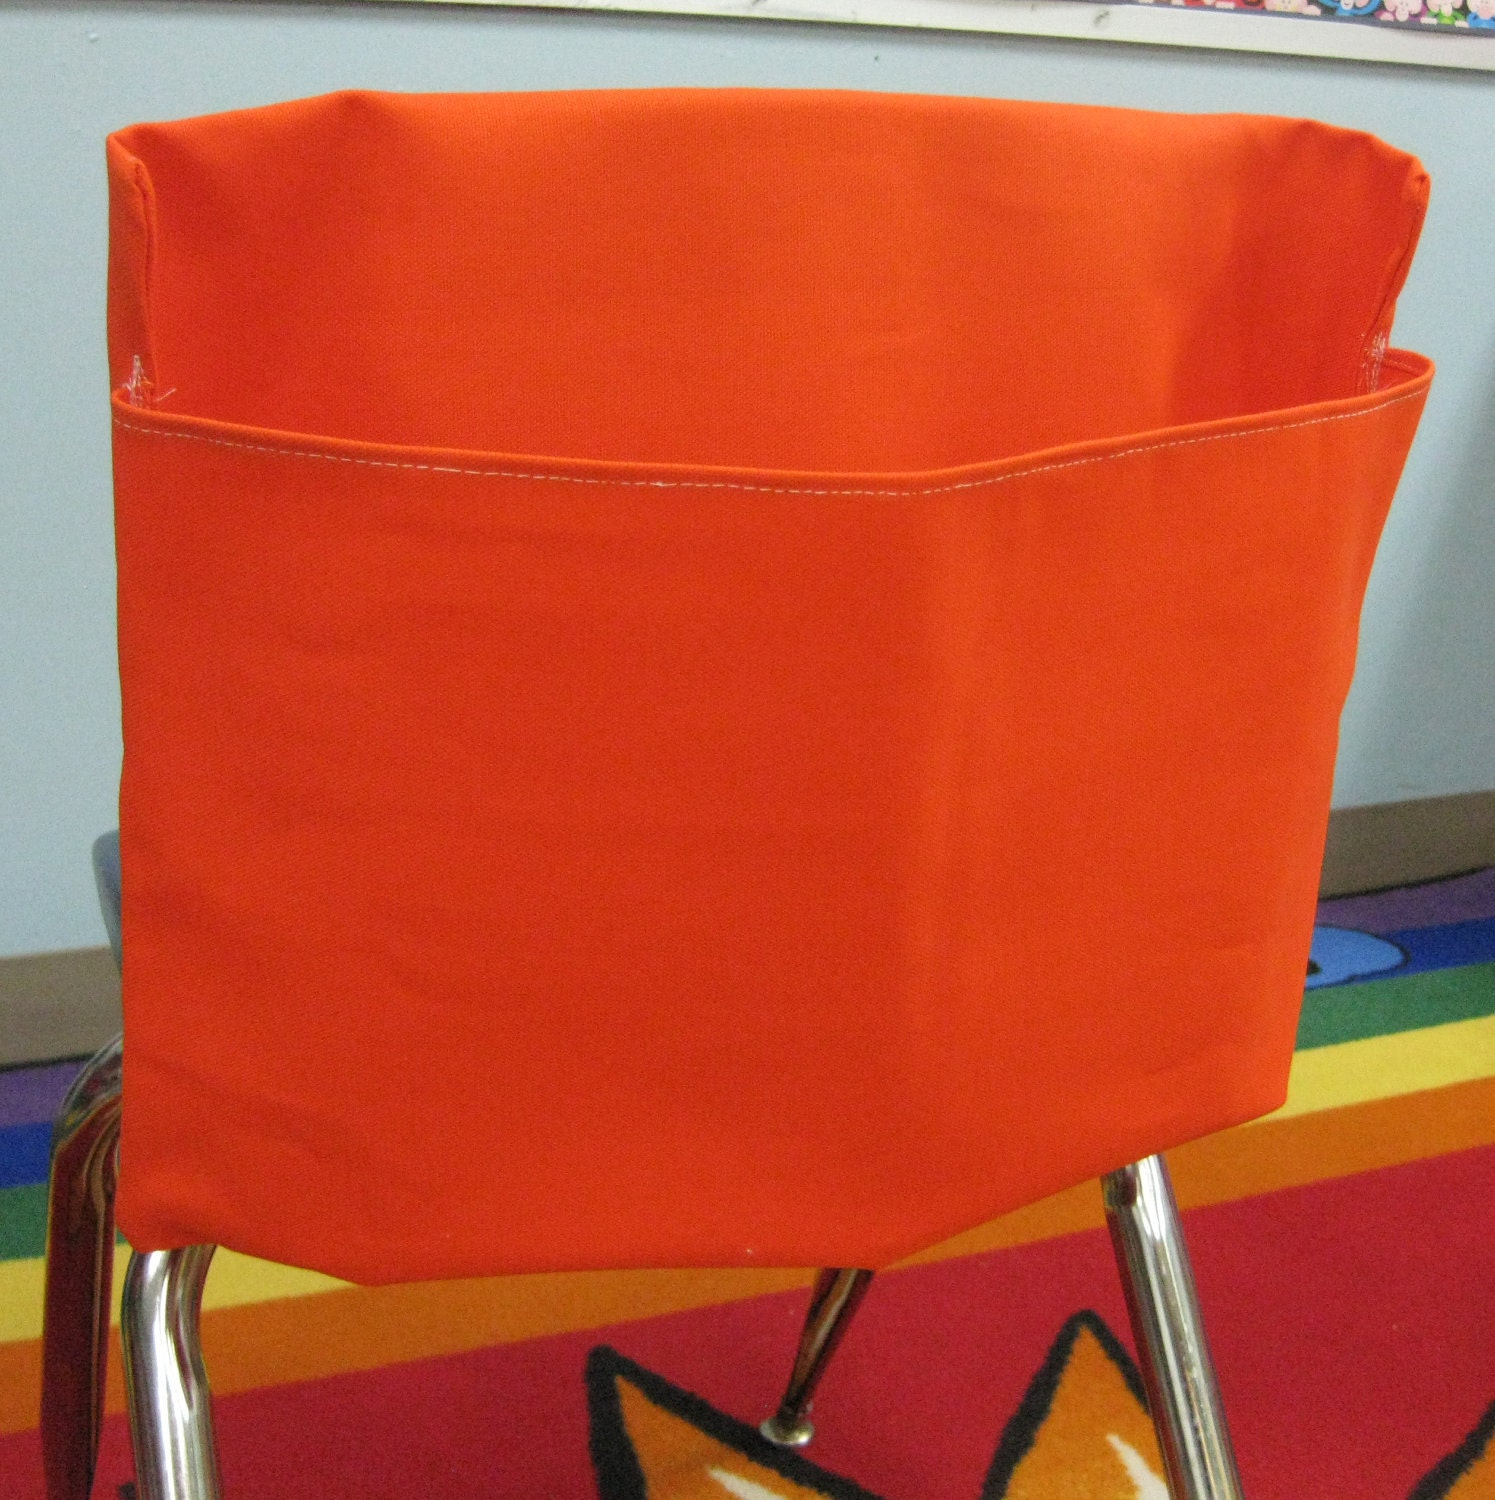 1 ORANGE Classroom Chair Pockets Seat Sacks Desk Organizer